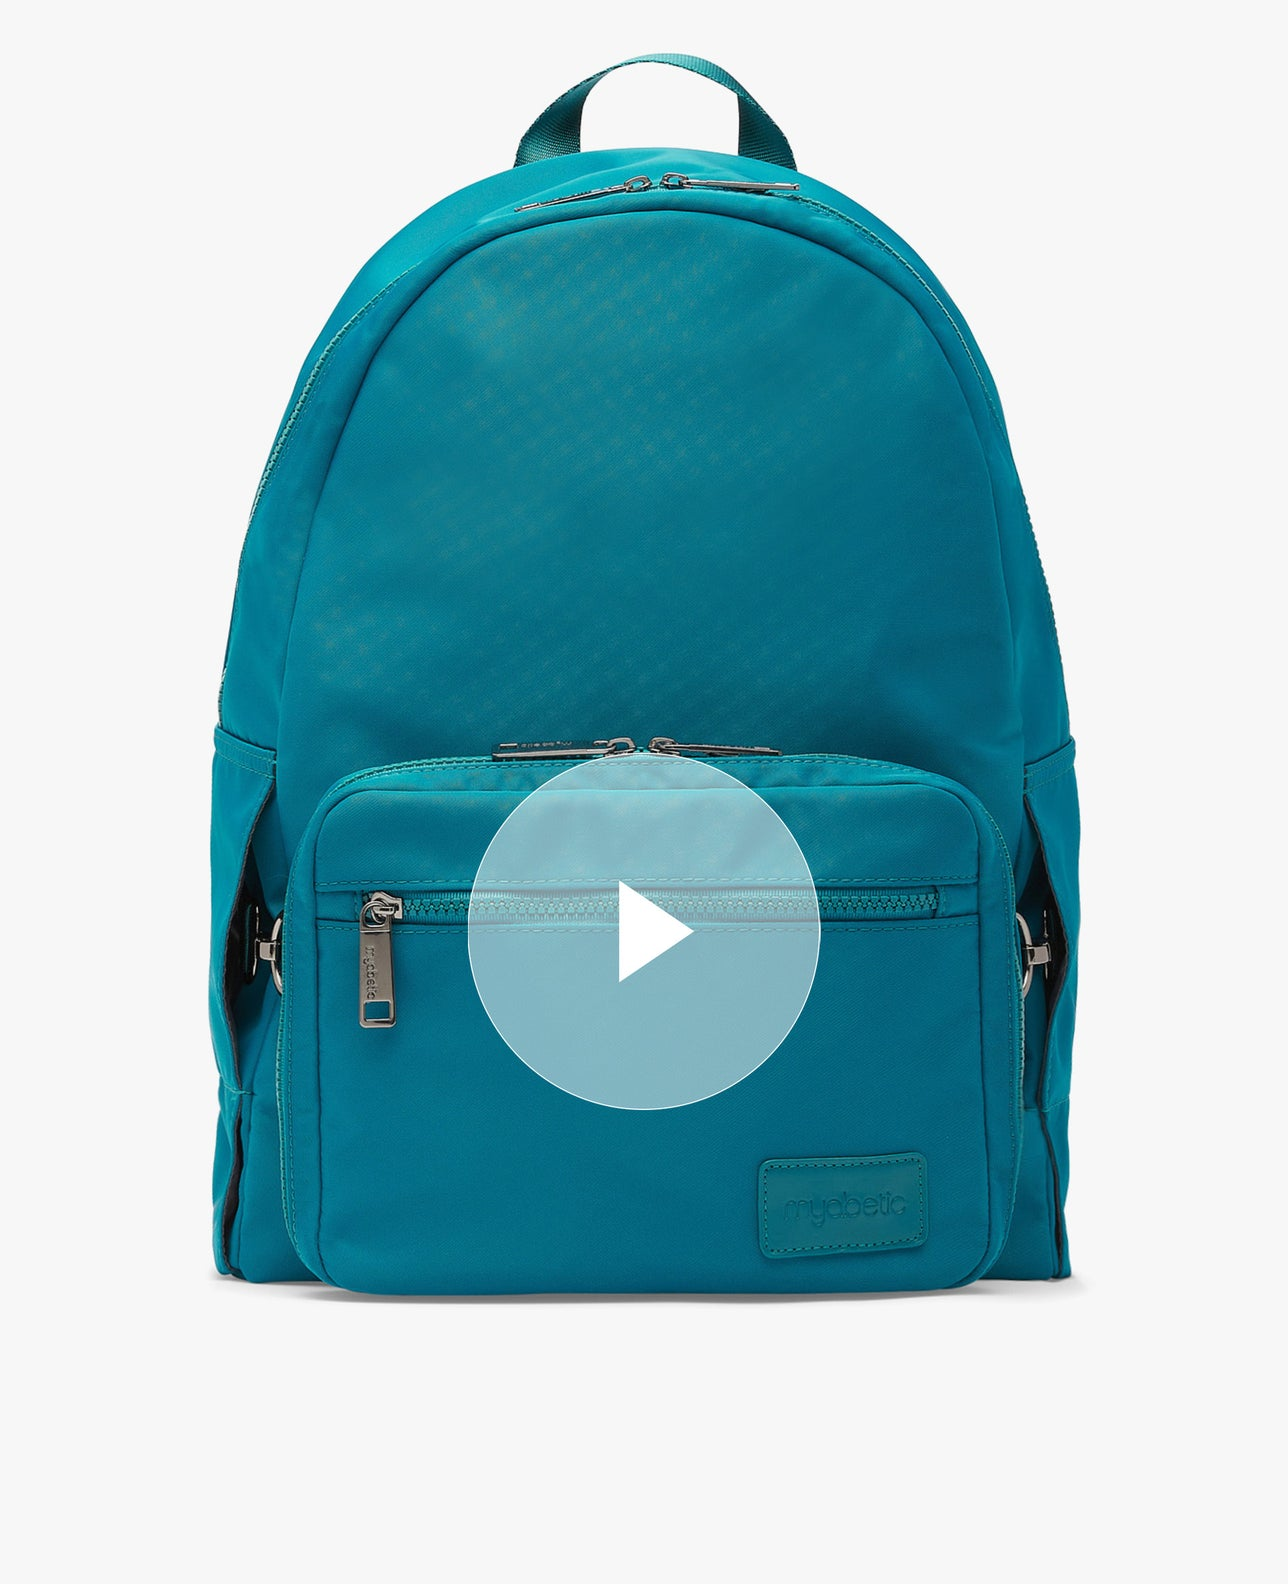 color:teal nylon  https://www.youtube.com/embed/3MHgxFb8kw8